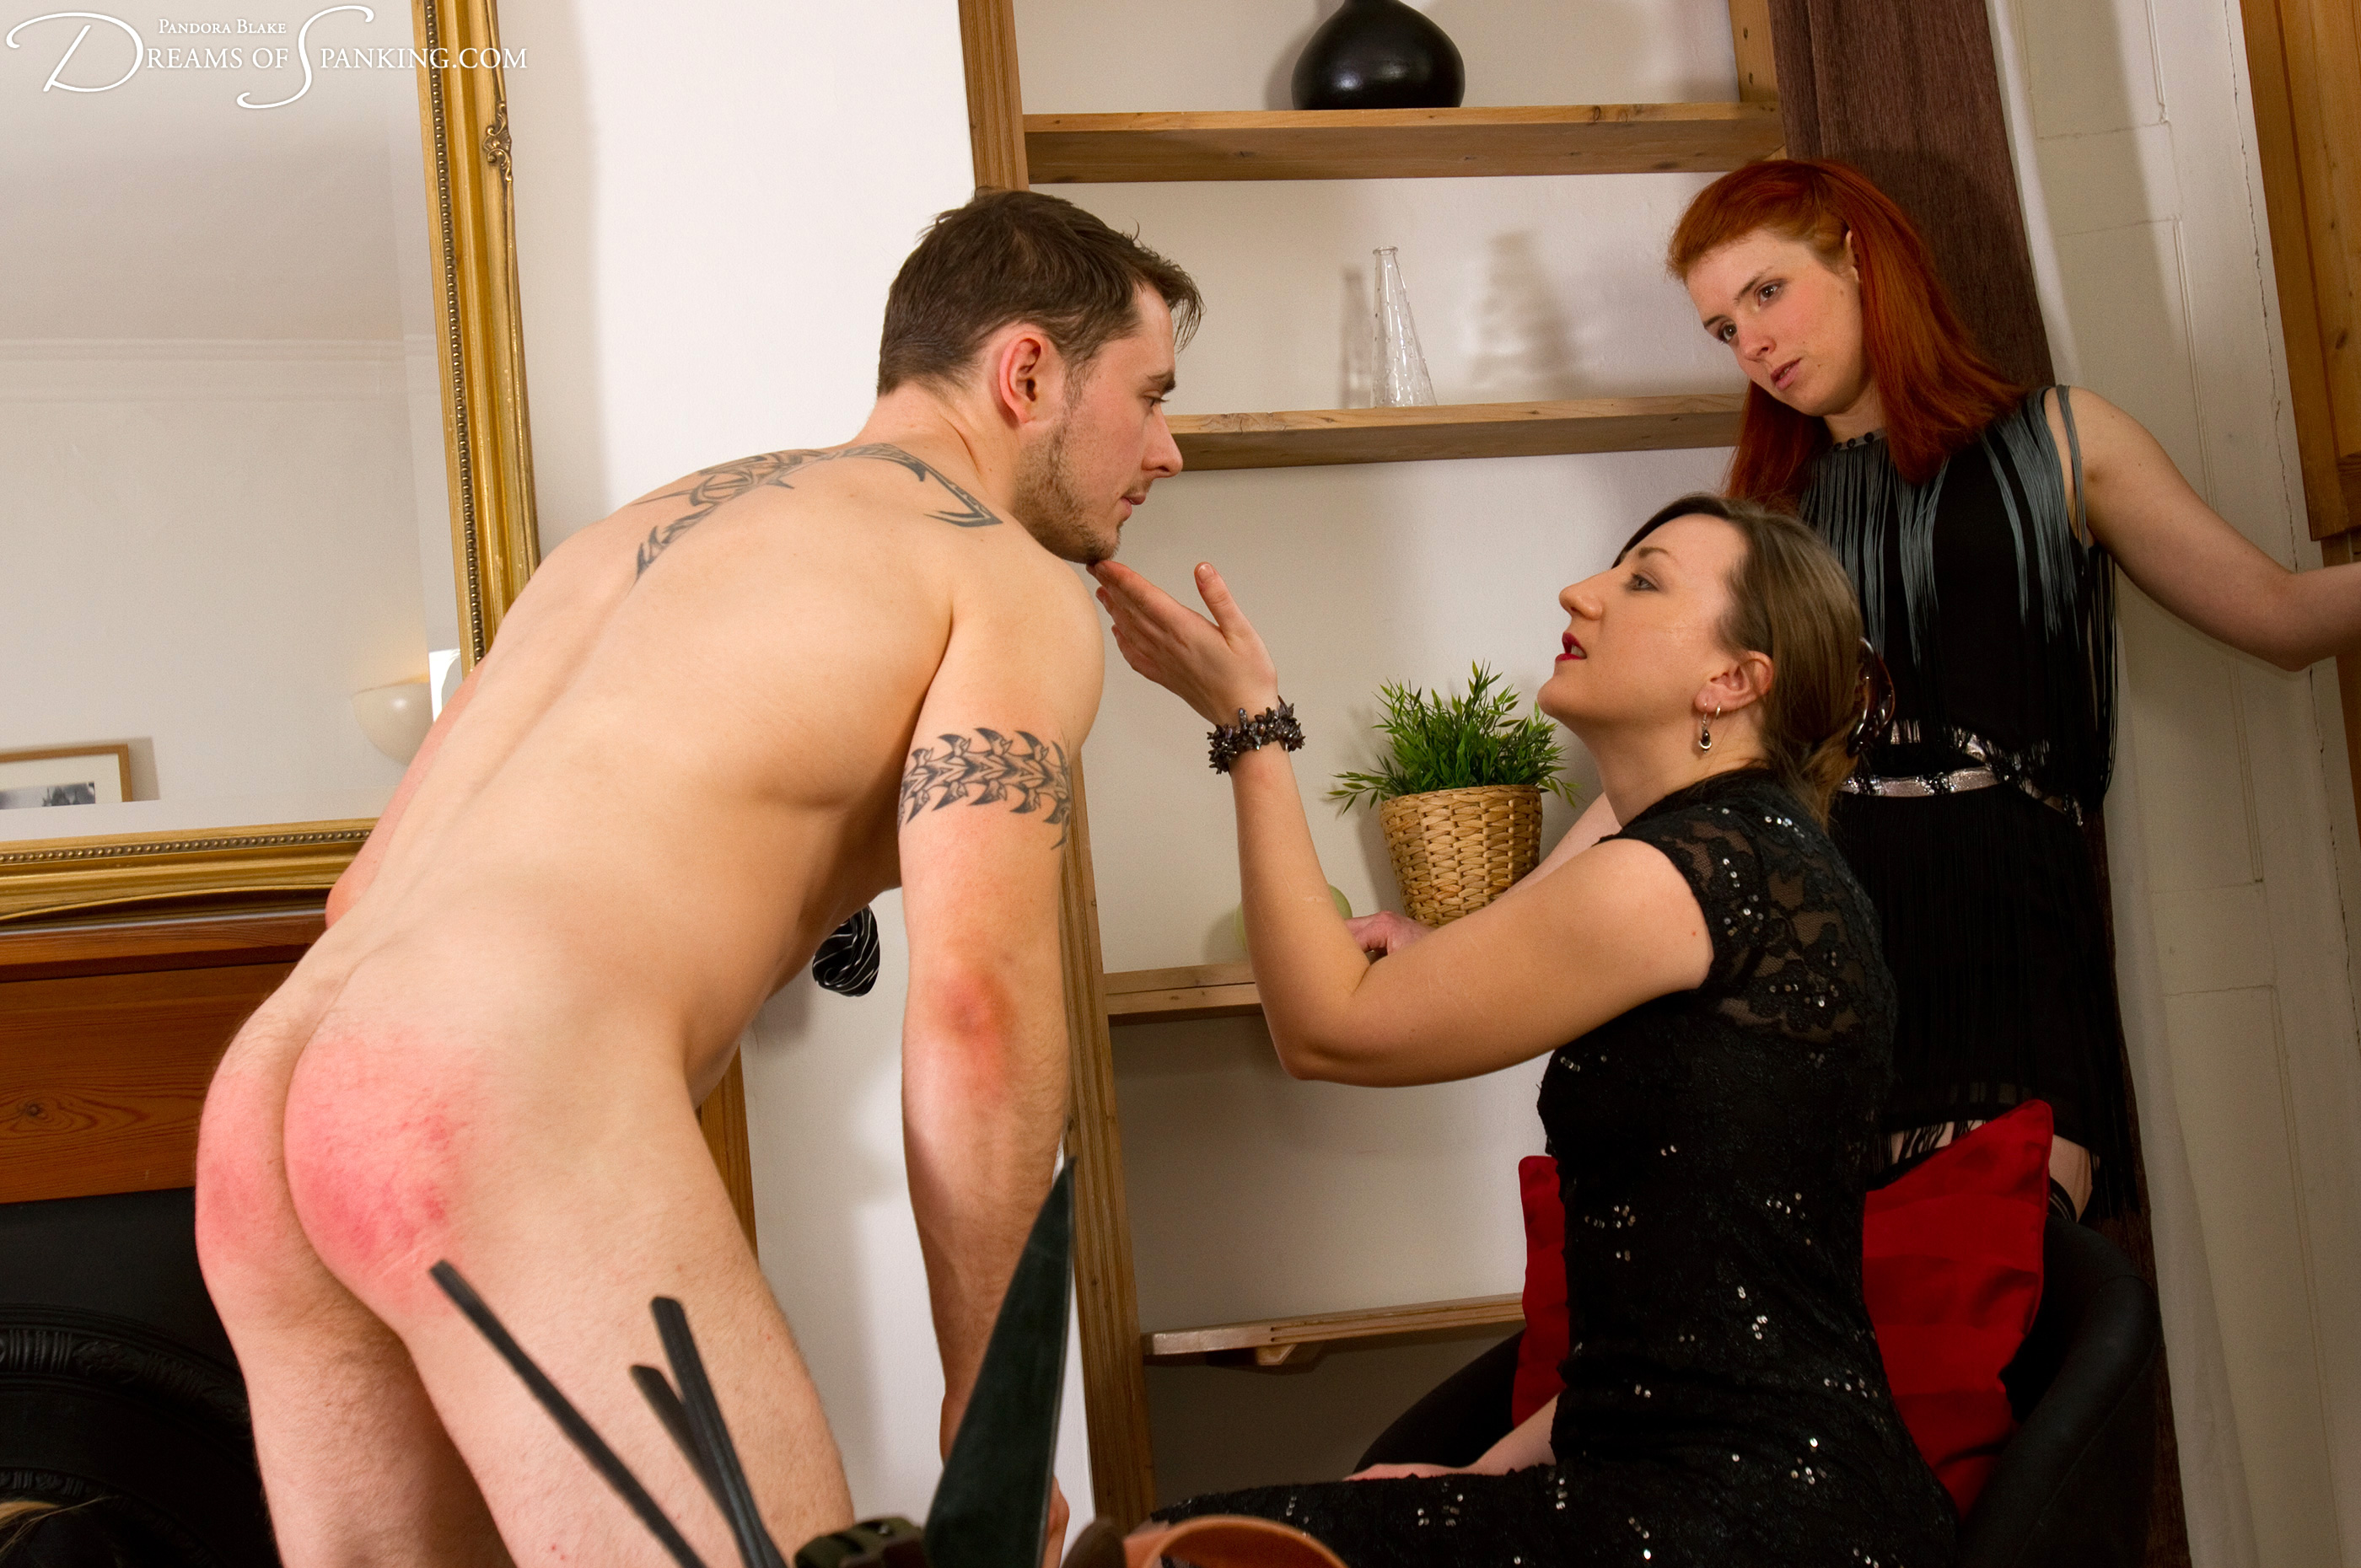 Girls tricked into sex videos